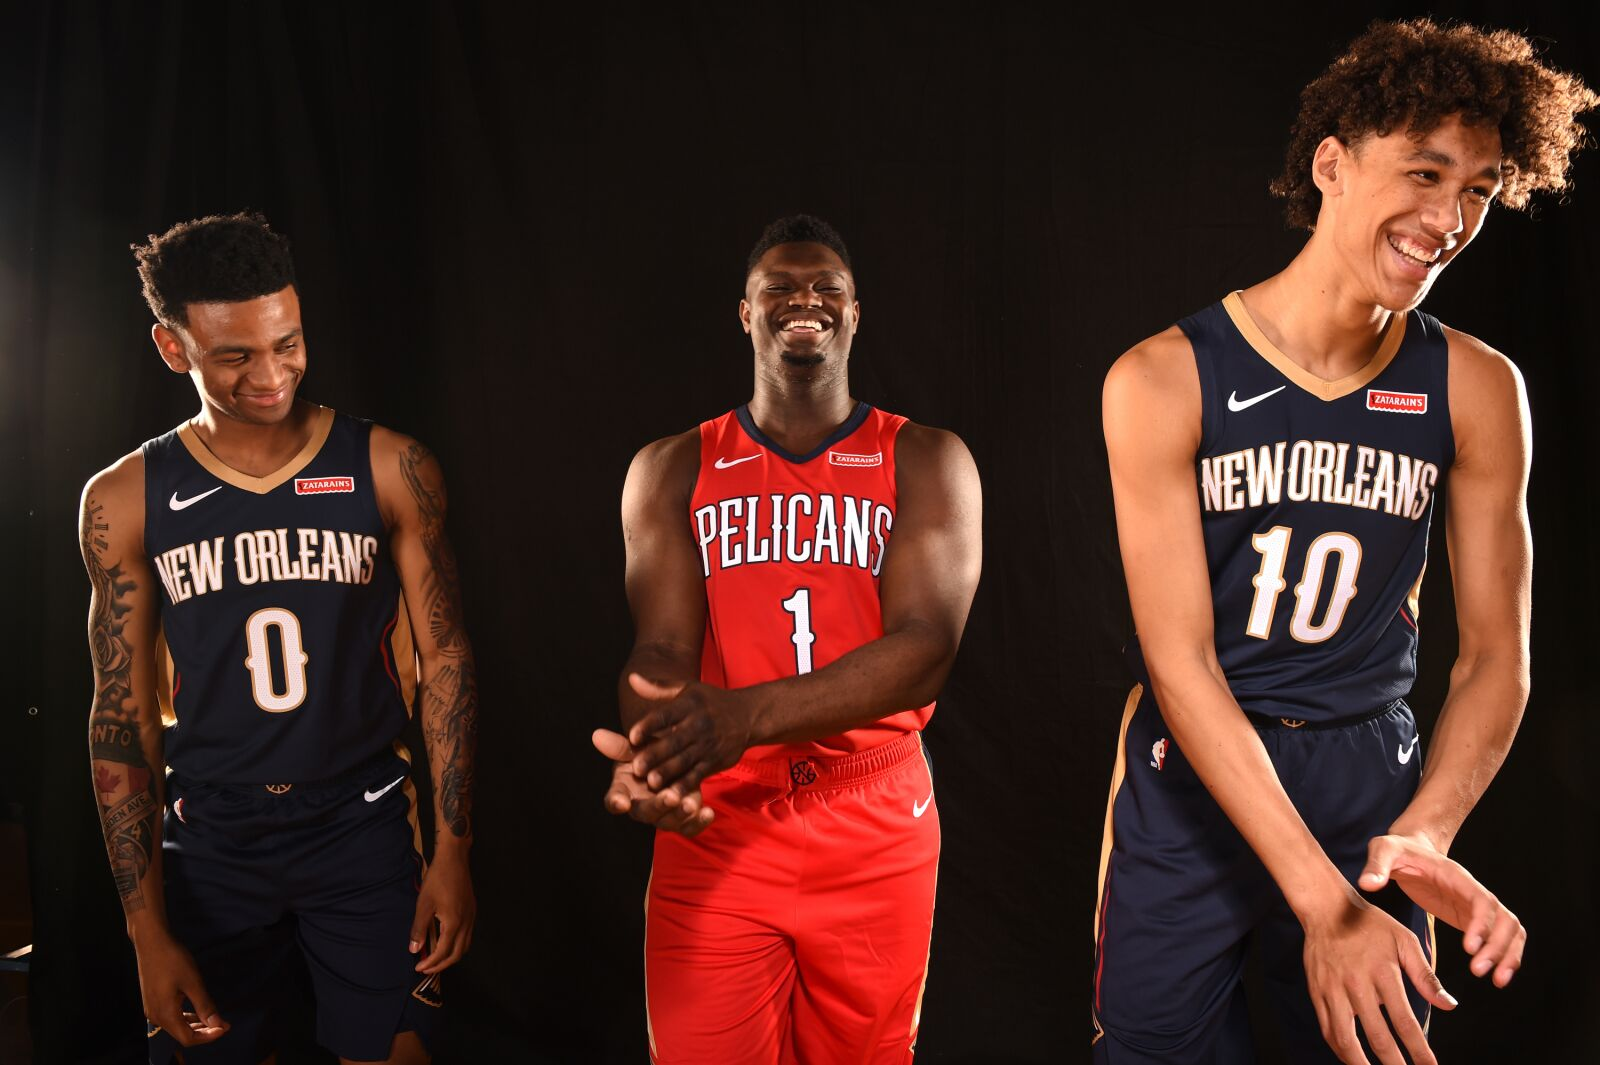 New Orleans and its Rising Sons: A New Era of Pelicans Basketball Dawns